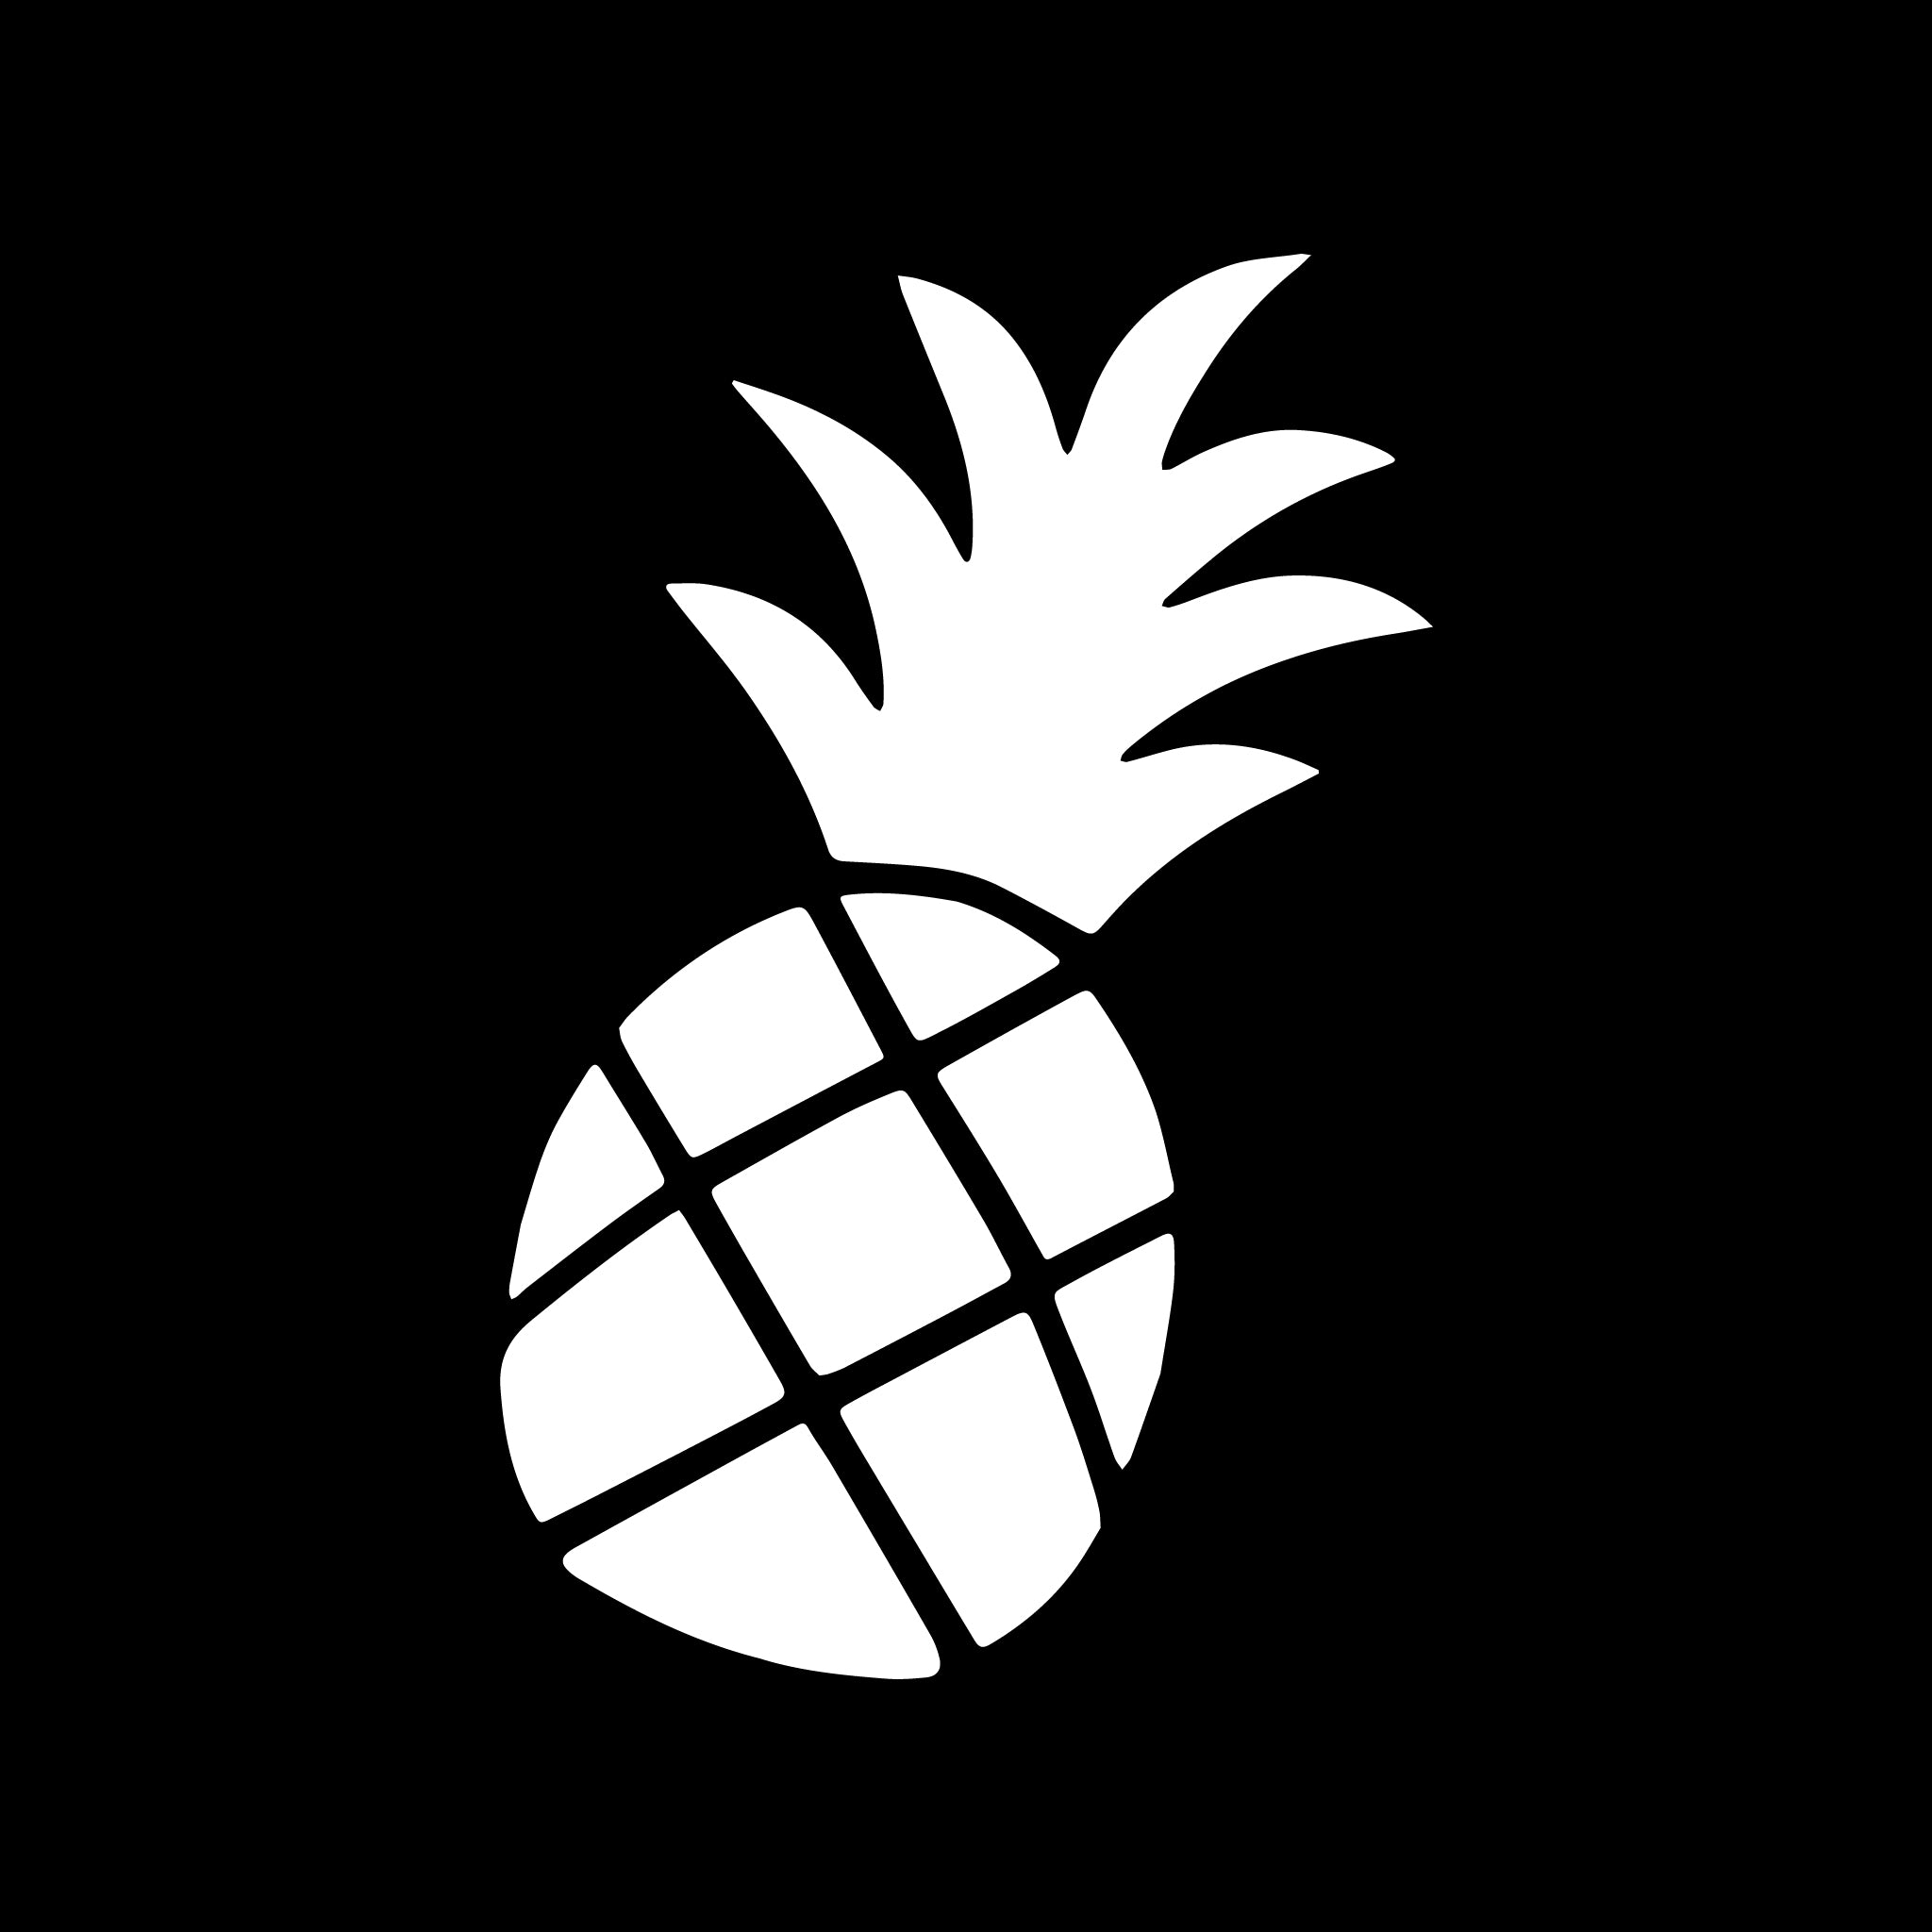 Jimmy Oakes Pineapple vinyl decal in White